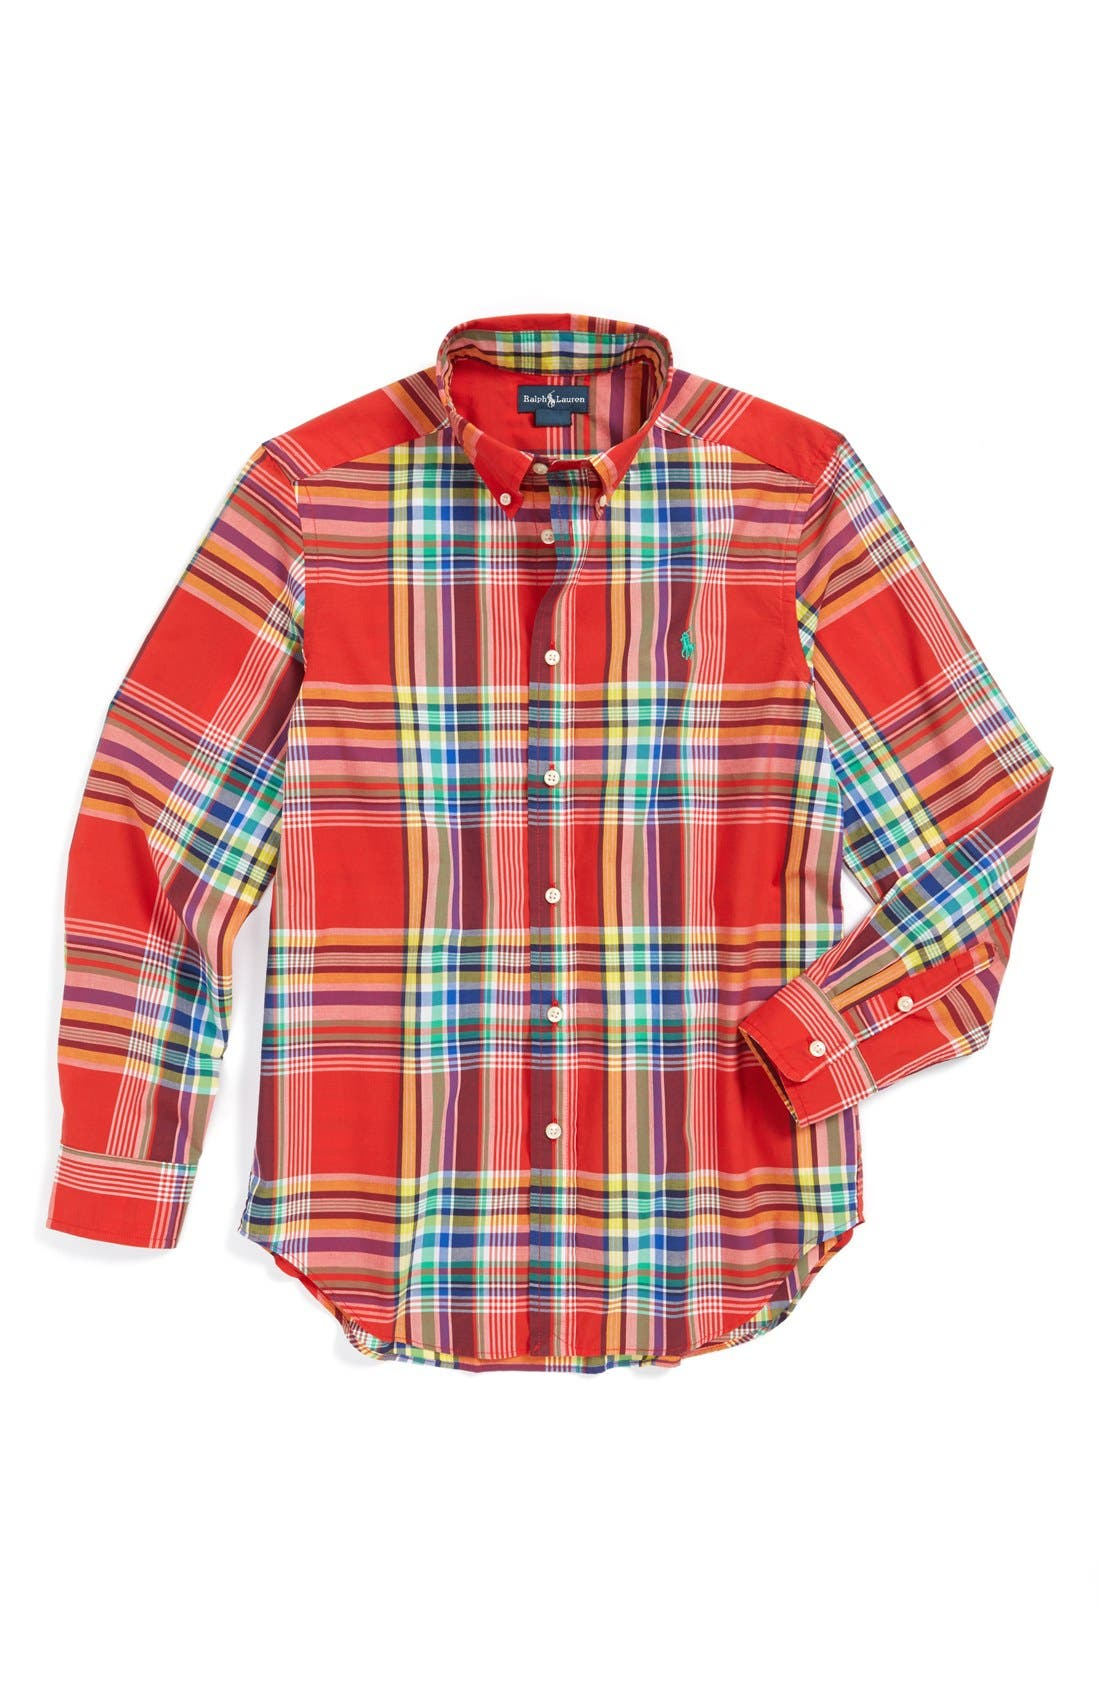 Main Image - Ralph Lauren Plaid Shirt (Little Boys)